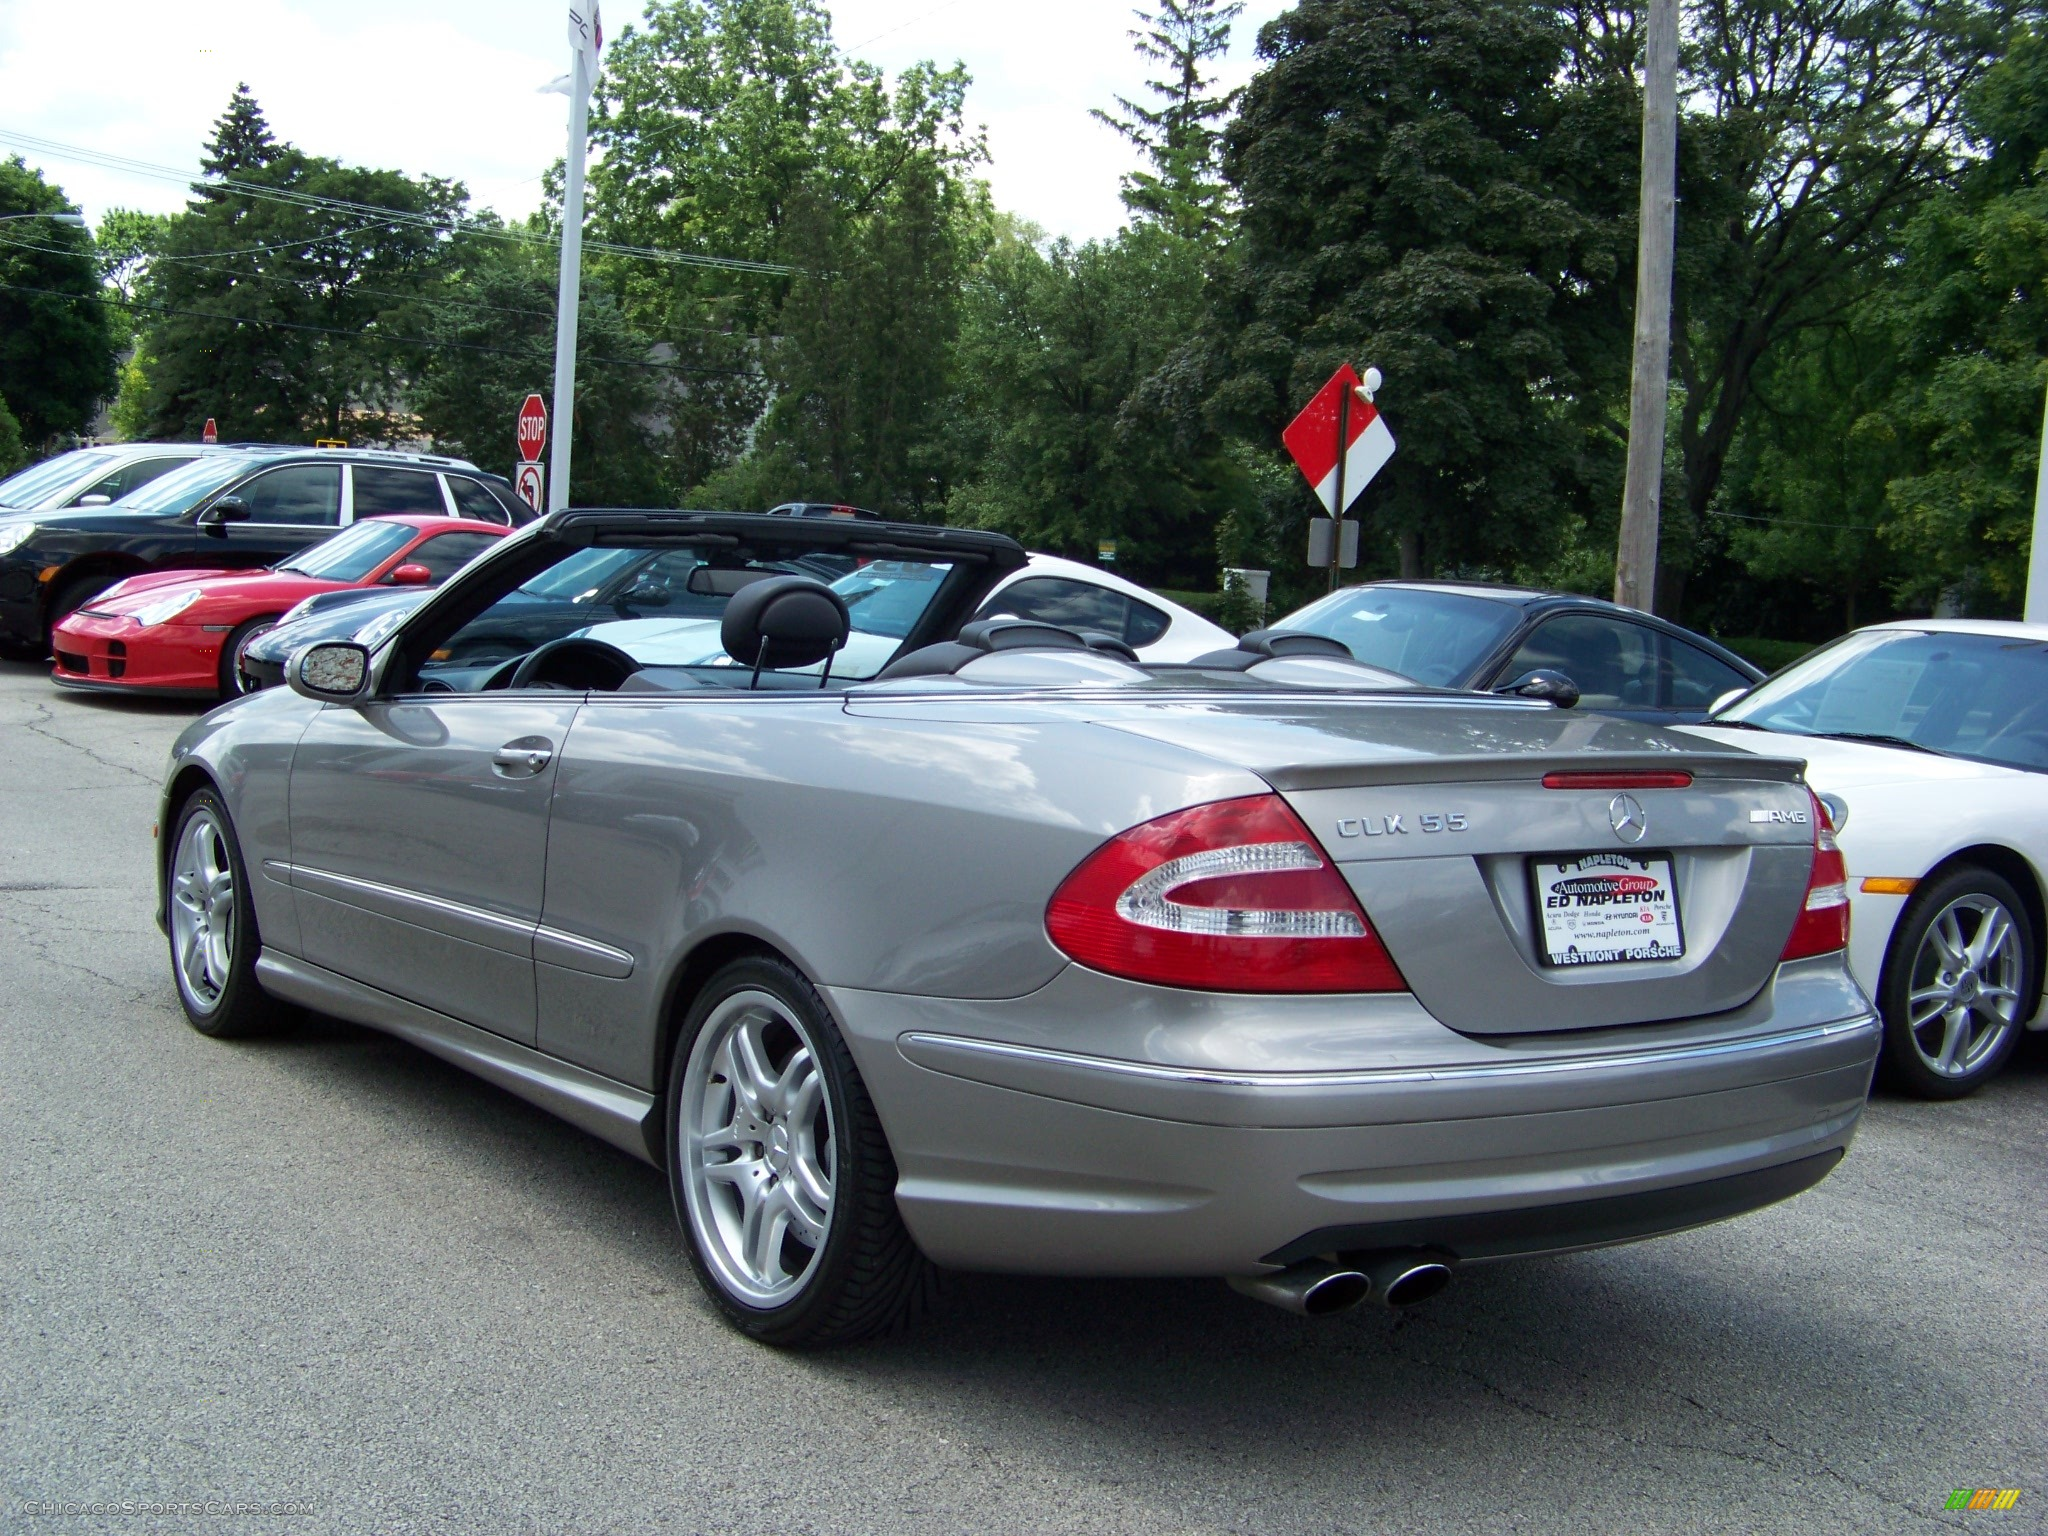 2005 Mercedes Benz Clk 55 Amg Cabriolet In Pewter Metallic